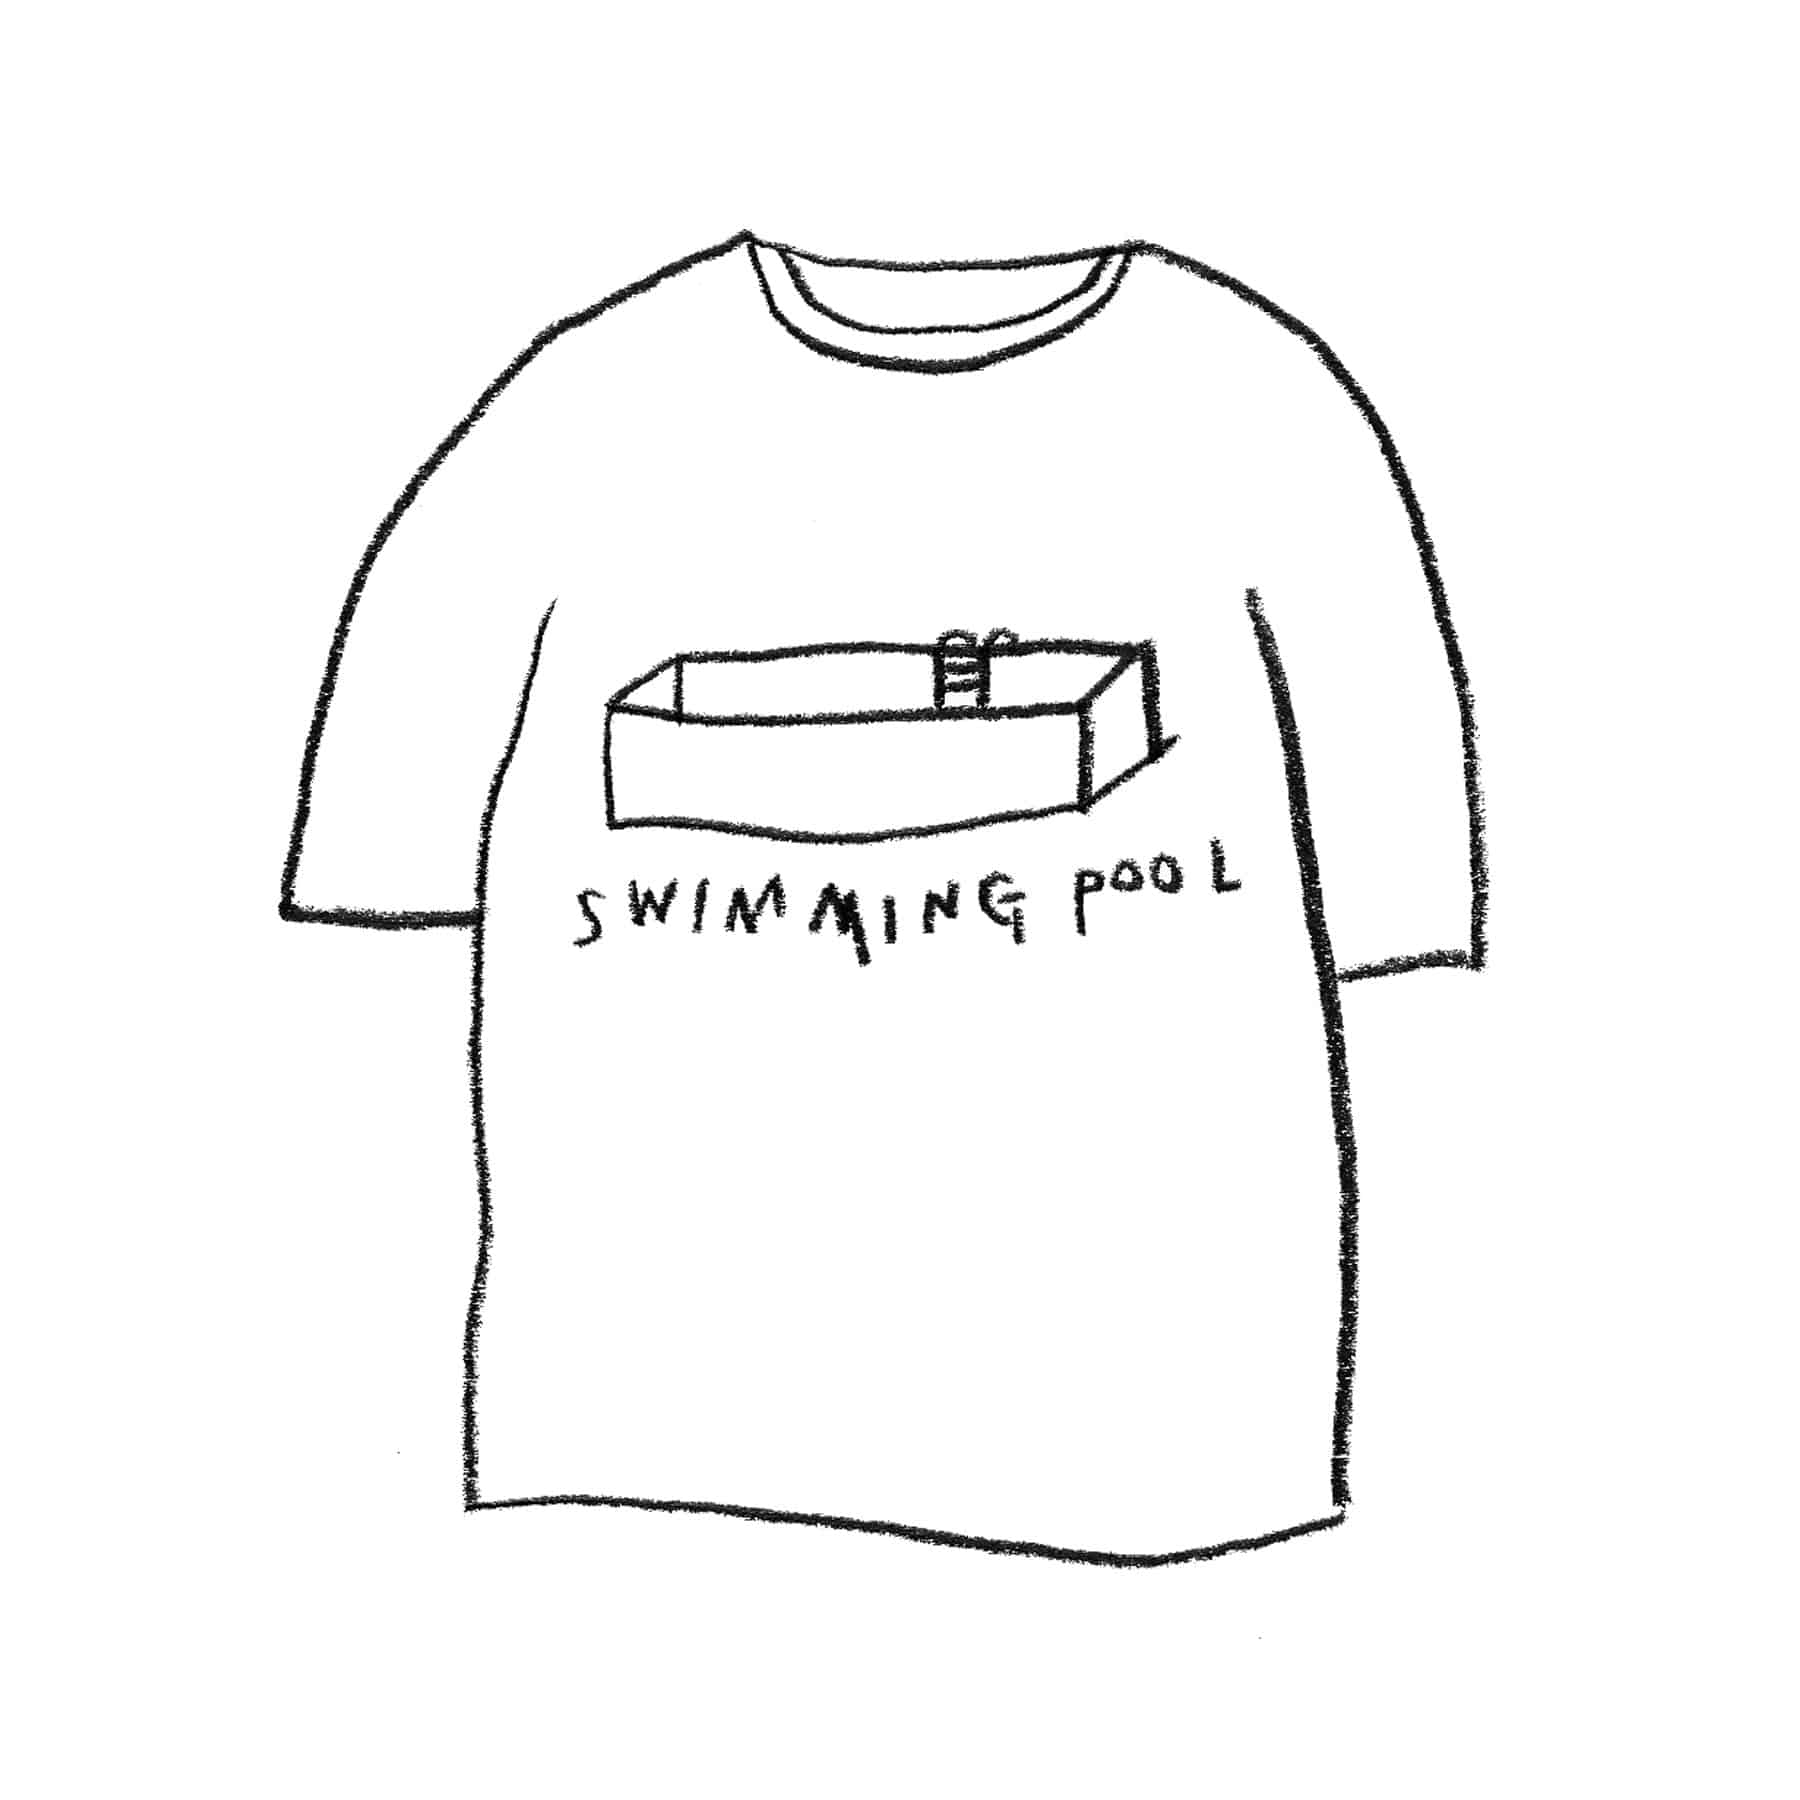 SWIMMING POOL 1/2 T-SHIRT